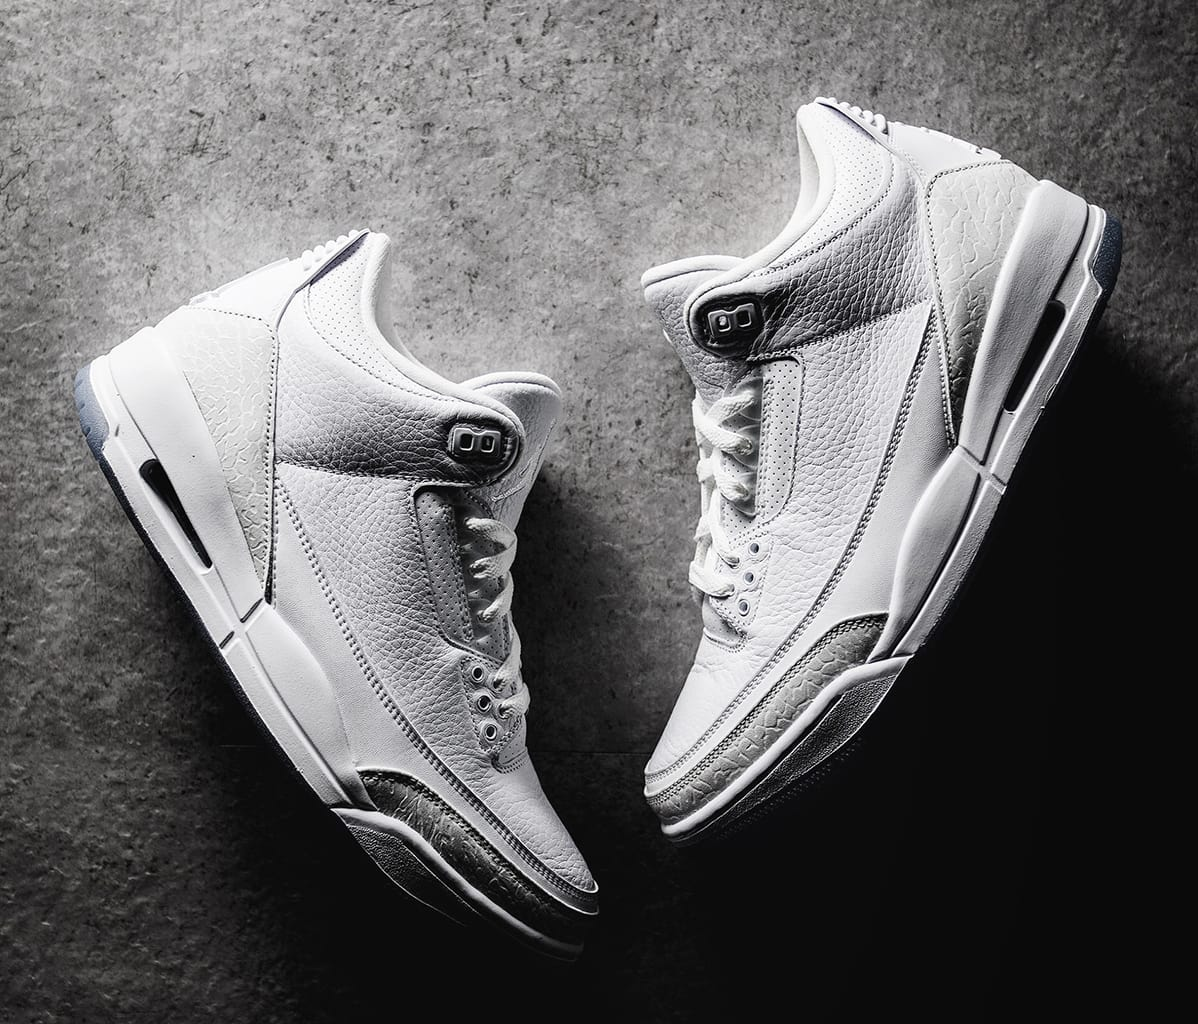 f150956436f489 10 Pairs of All-White Sneakers You Need for This Summer